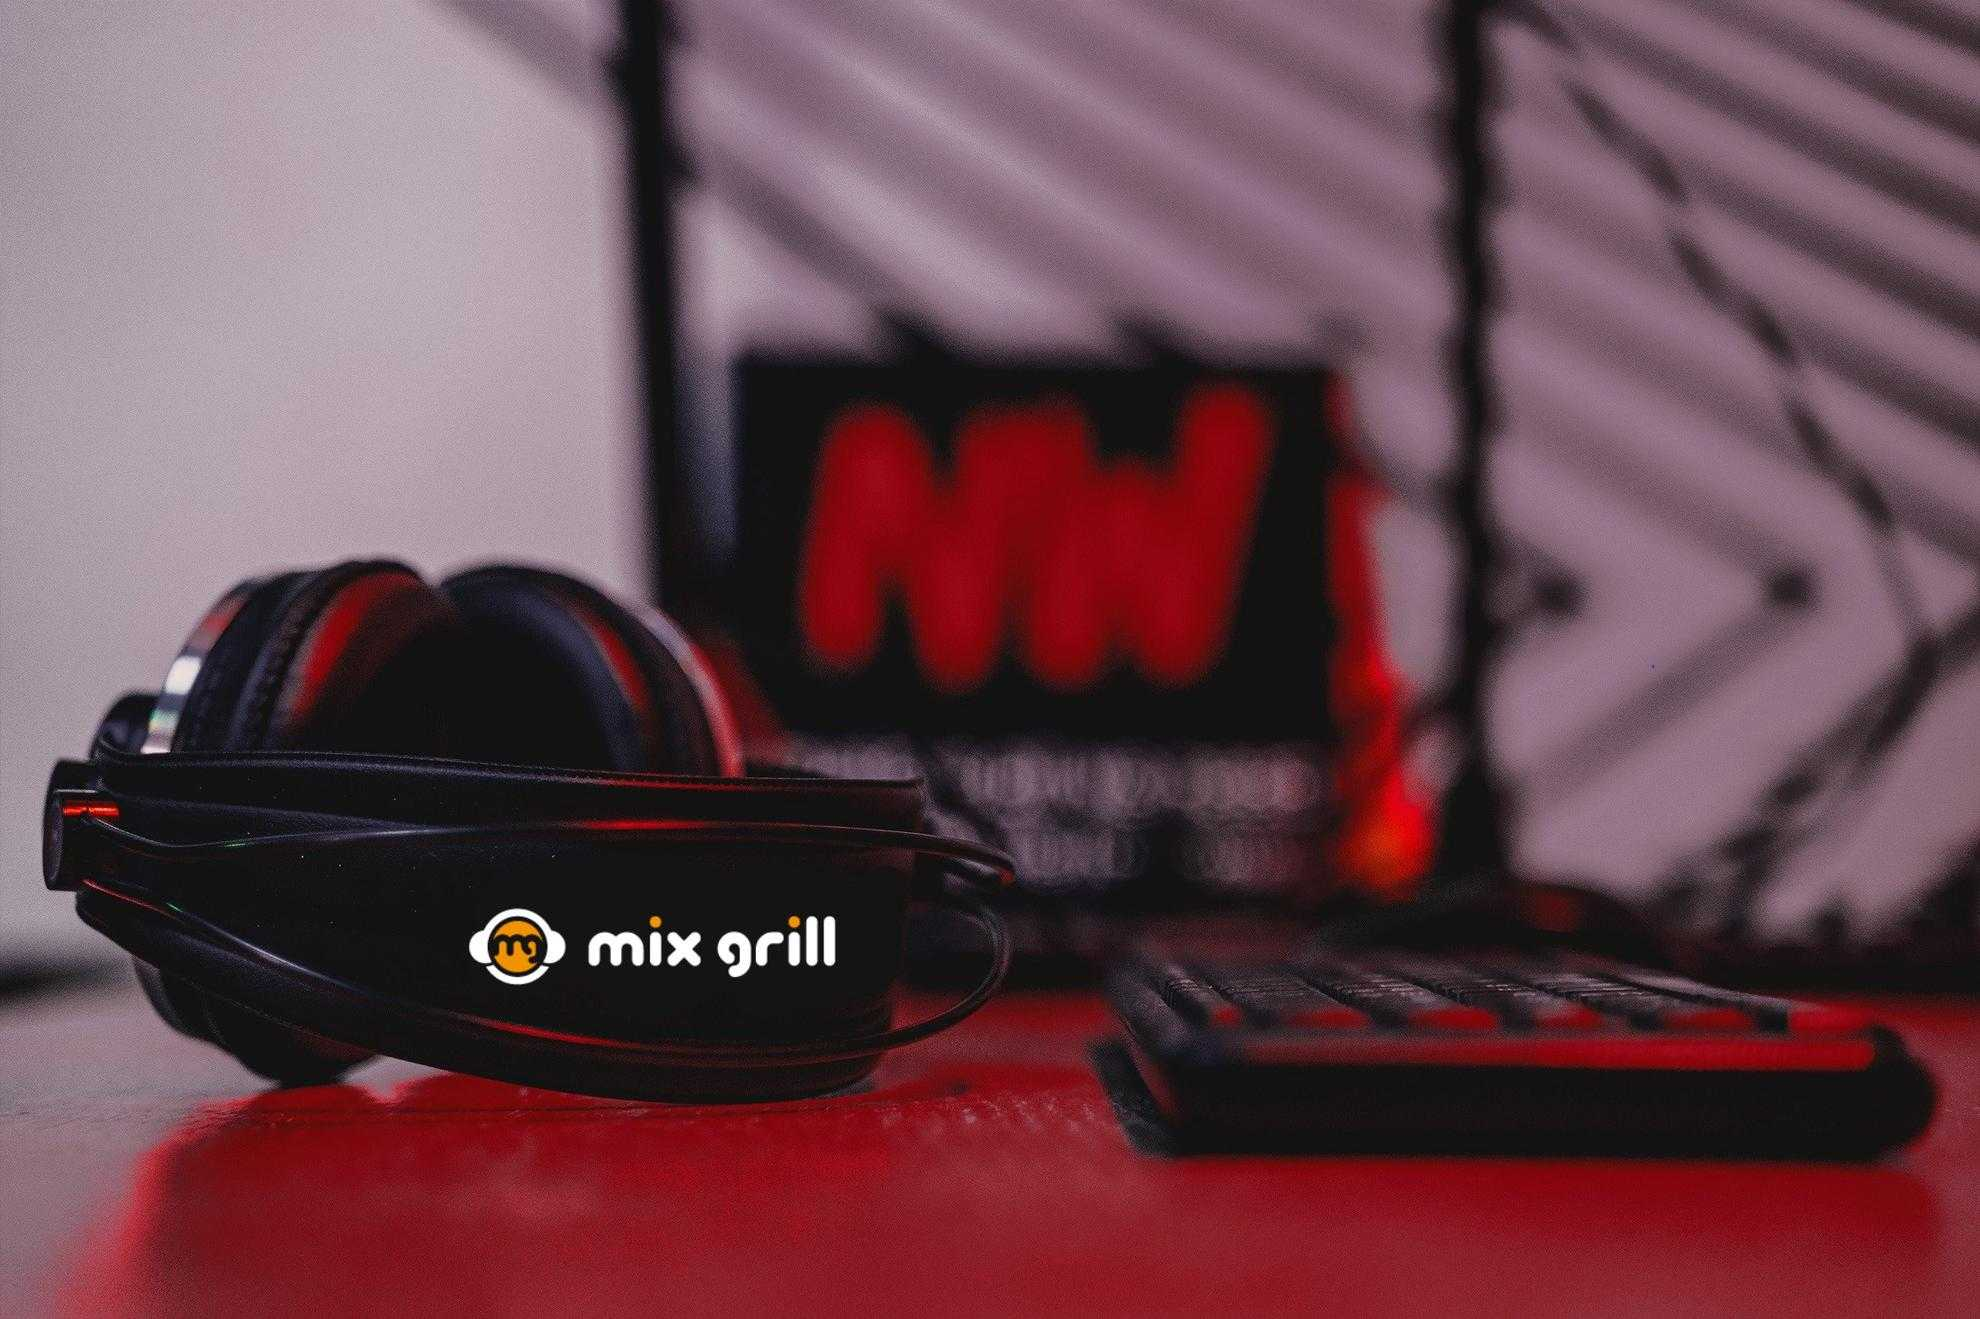 Mix Grill & Radio Nowhere